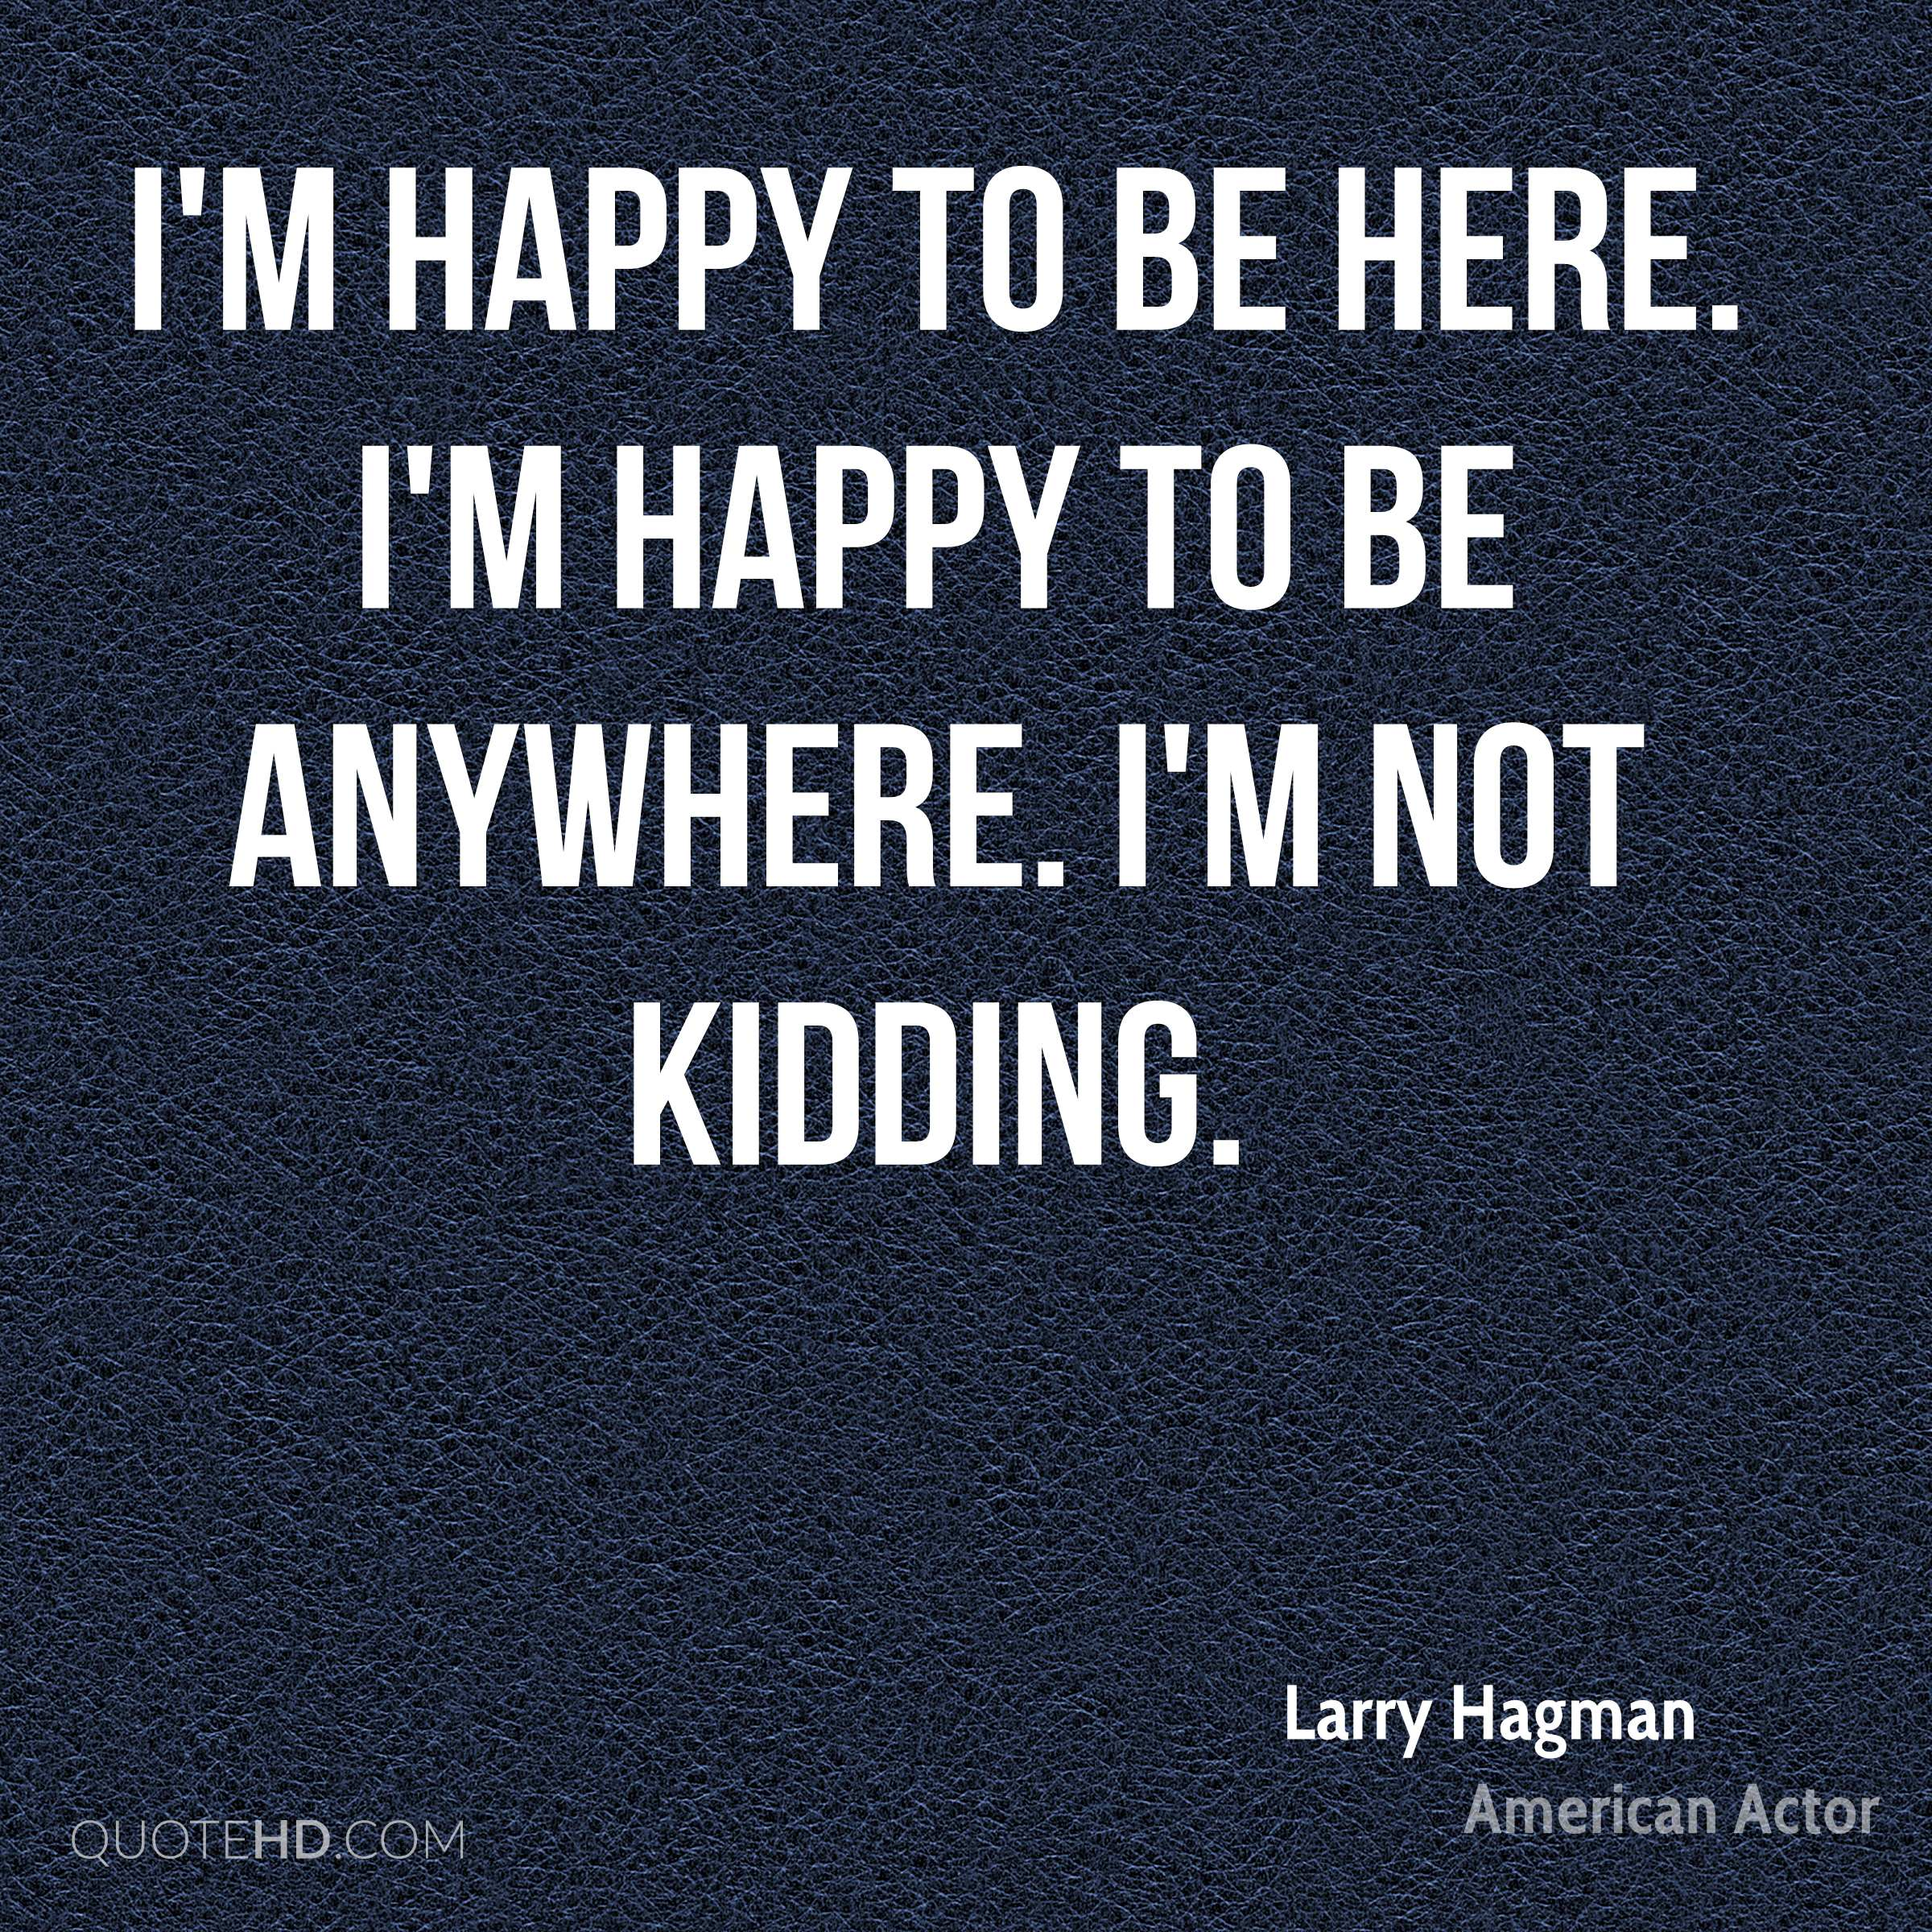 I'm happy to be here. I'm happy to be anywhere. I'm not kidding.